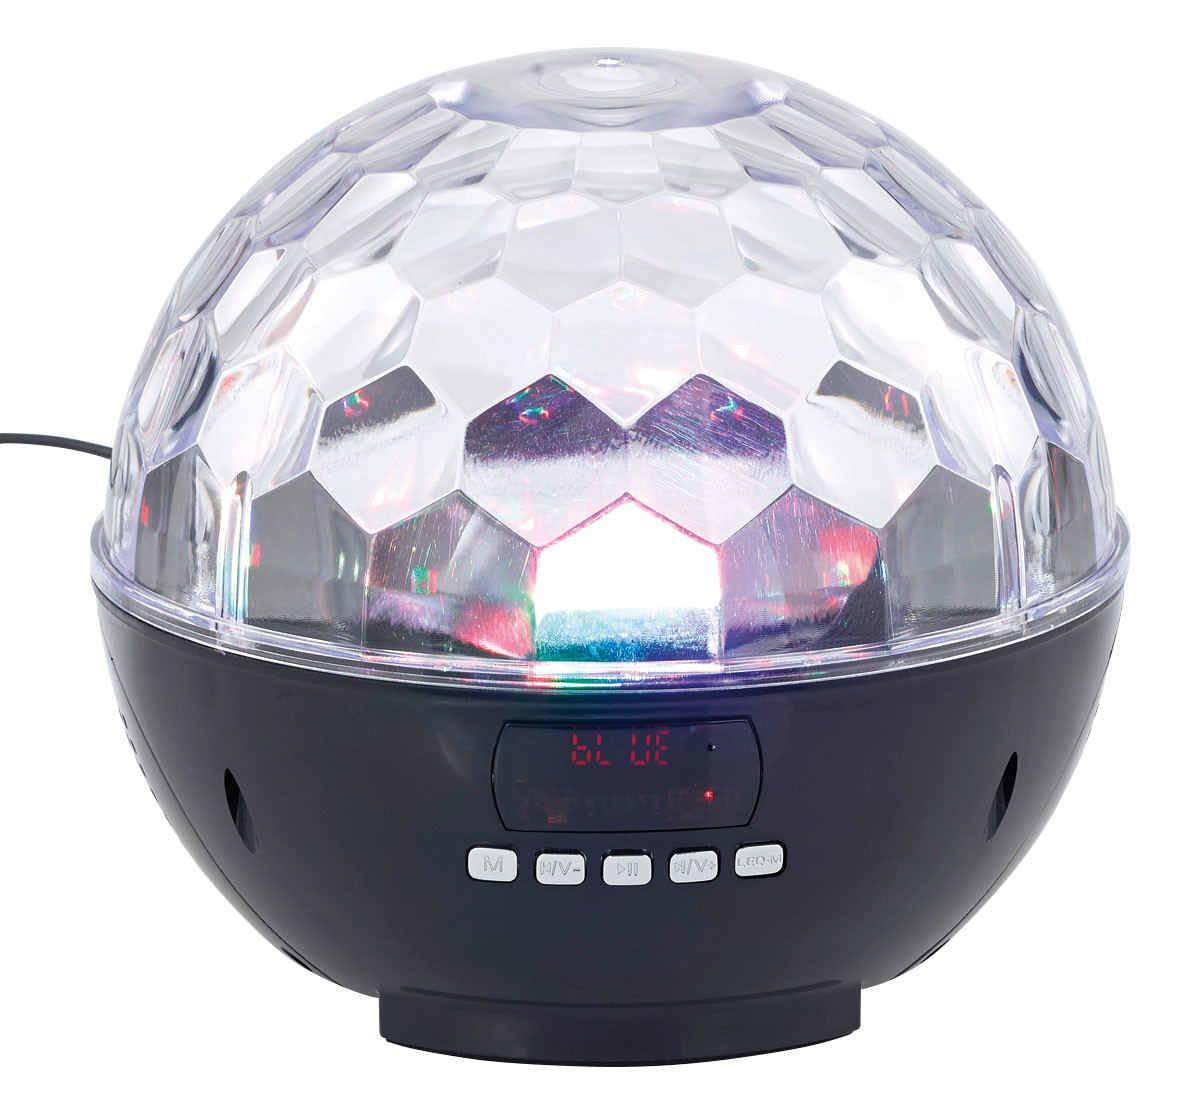 enceinte bluetooth avec boule stroboscope rgb pour soir e disco. Black Bedroom Furniture Sets. Home Design Ideas